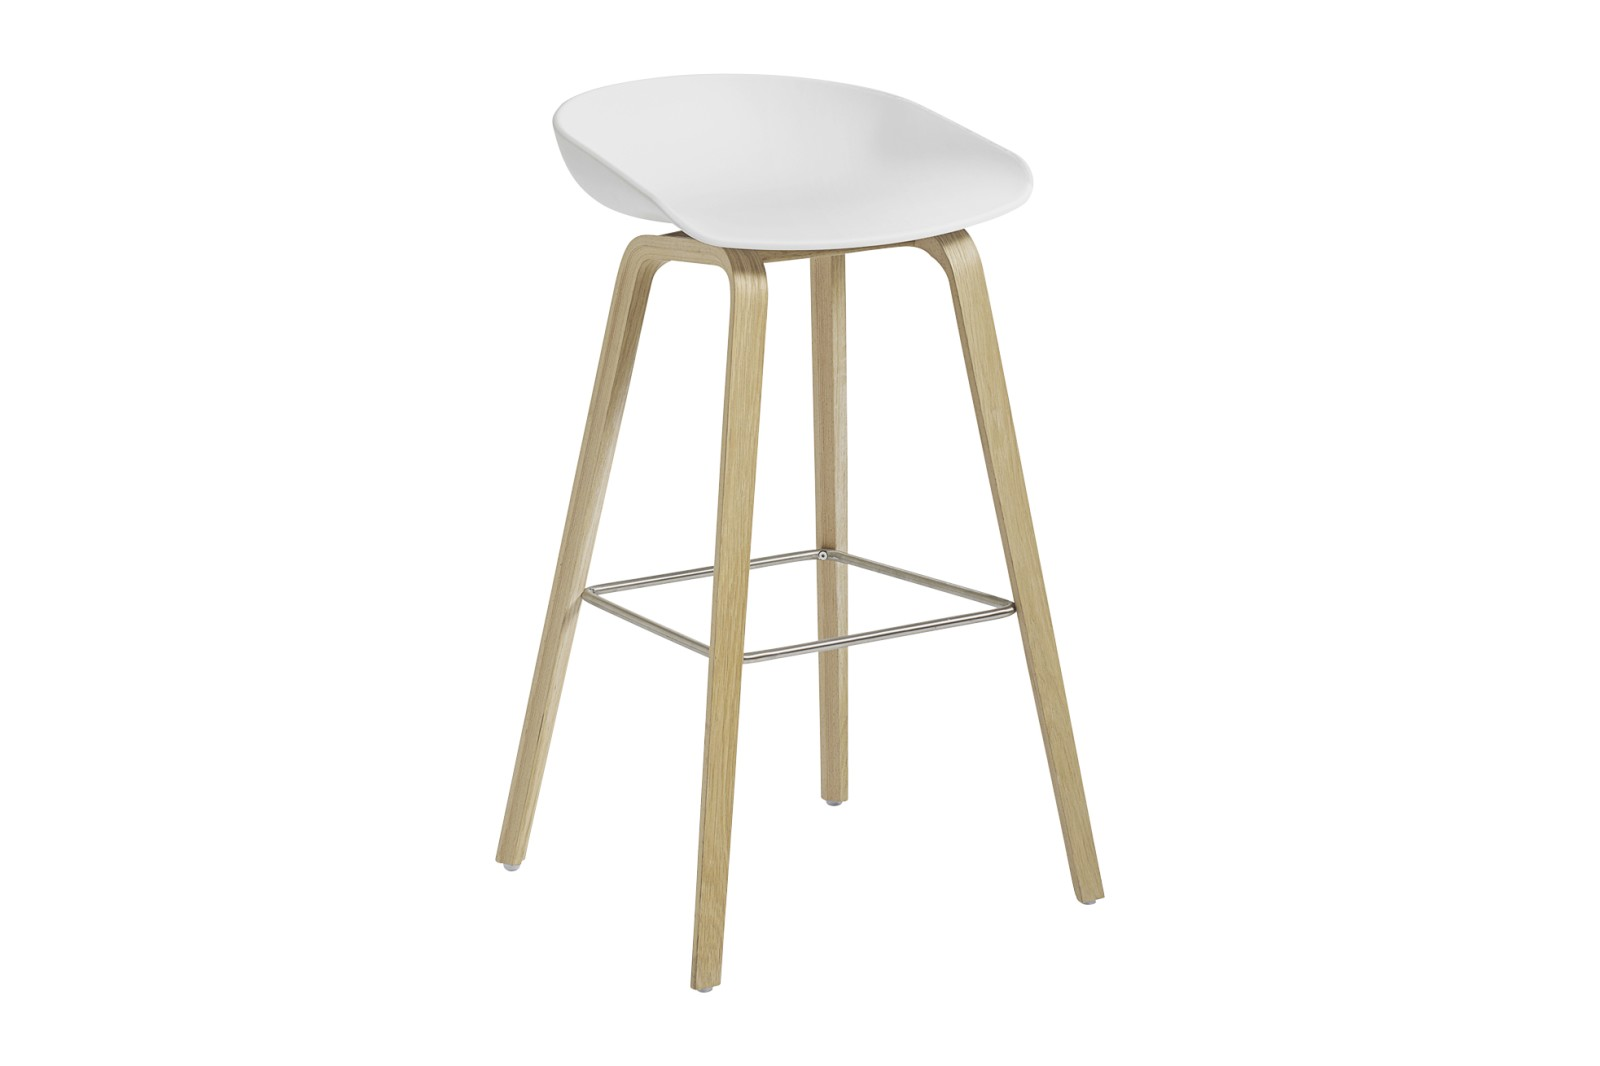 About A Stool AAS32 Matt Lacquered Oak Base, White Seat, High, Stainless Steel